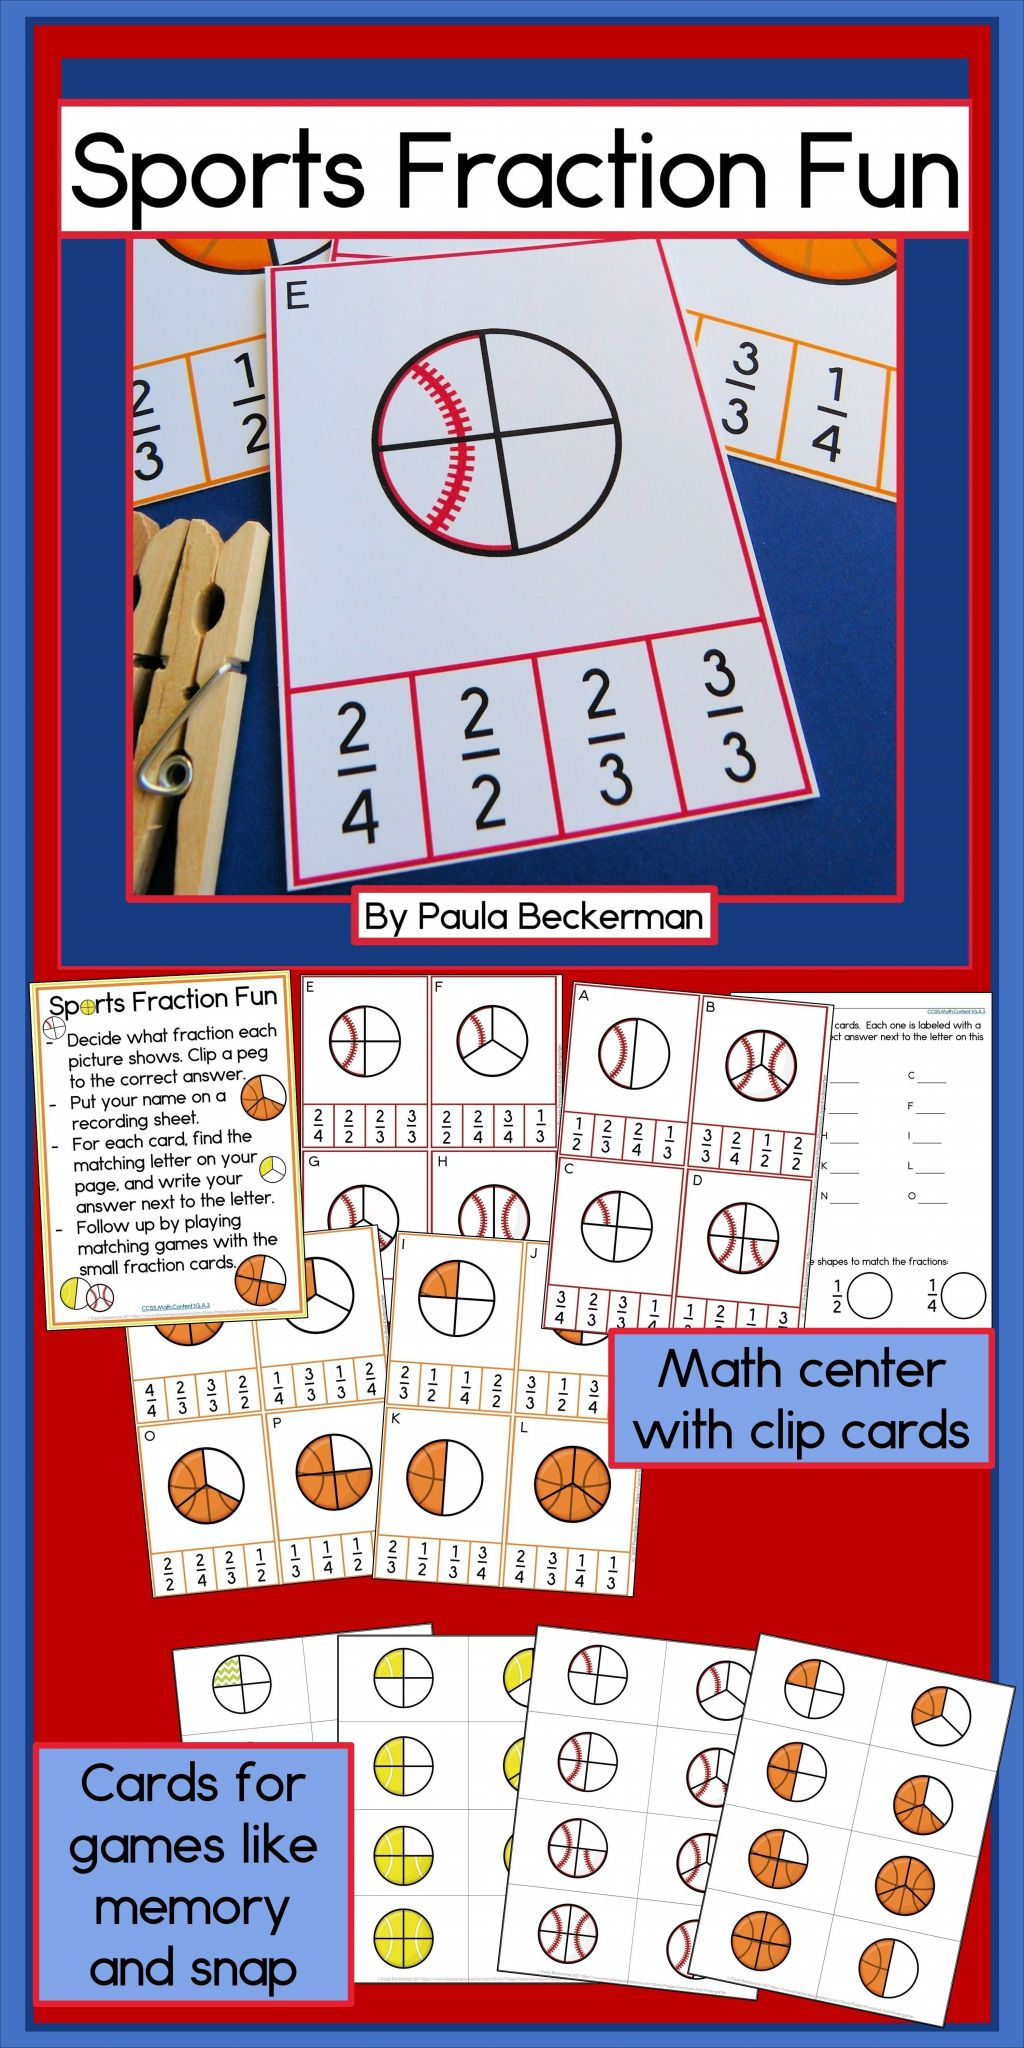 Fun Math Worksheets For 6th Grade